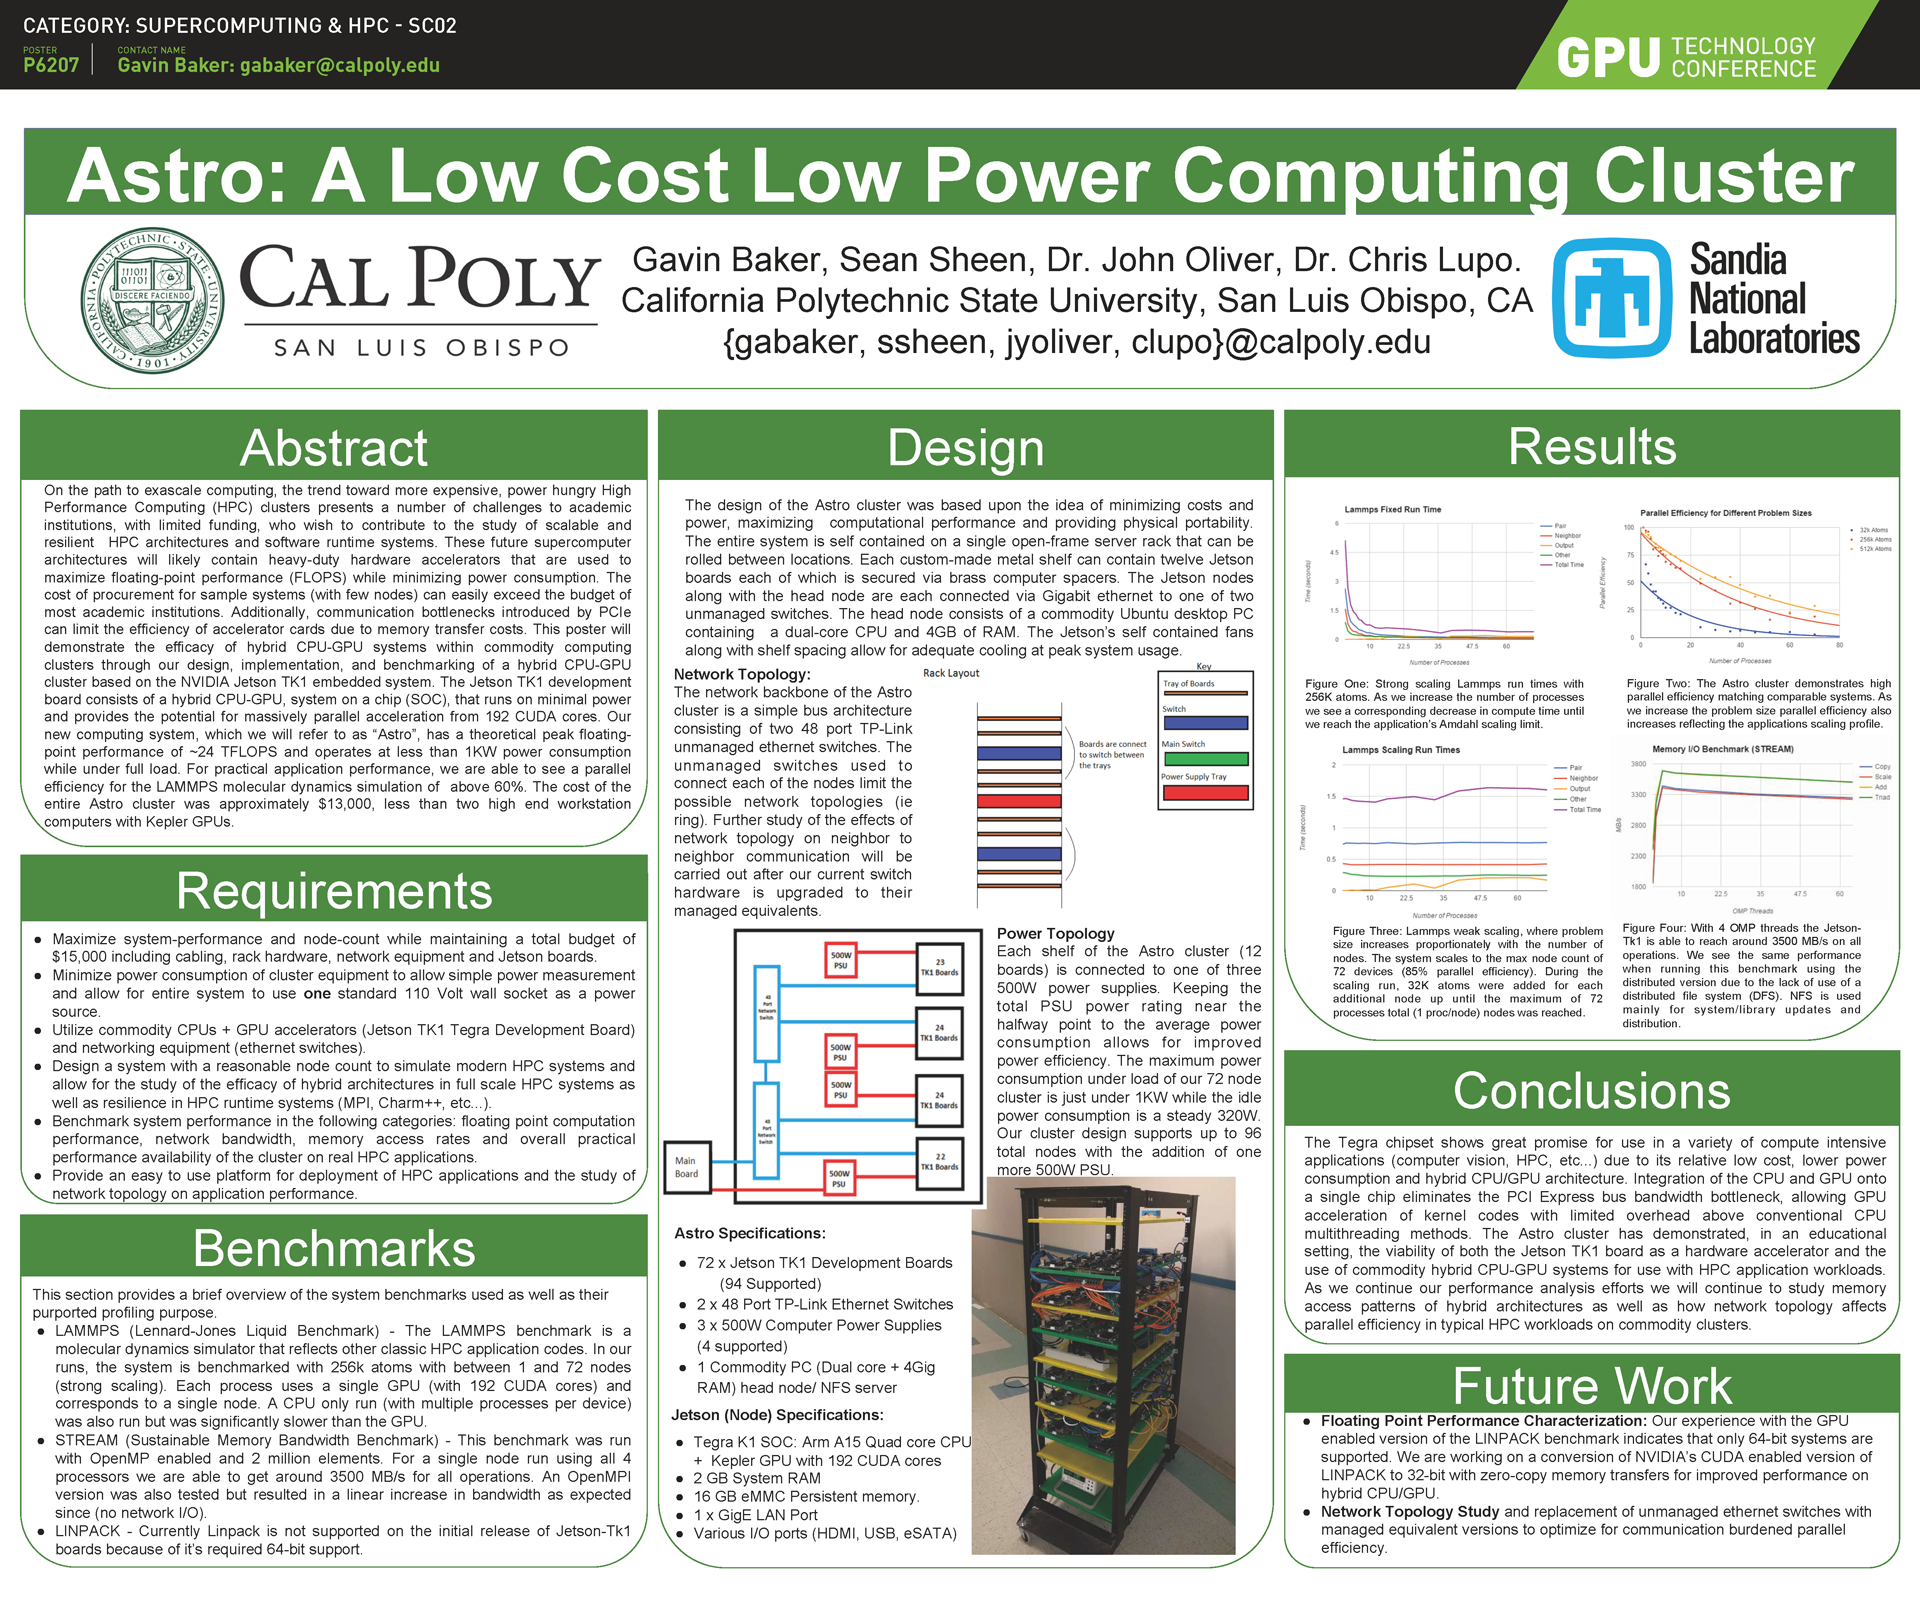 Standard conference poster size